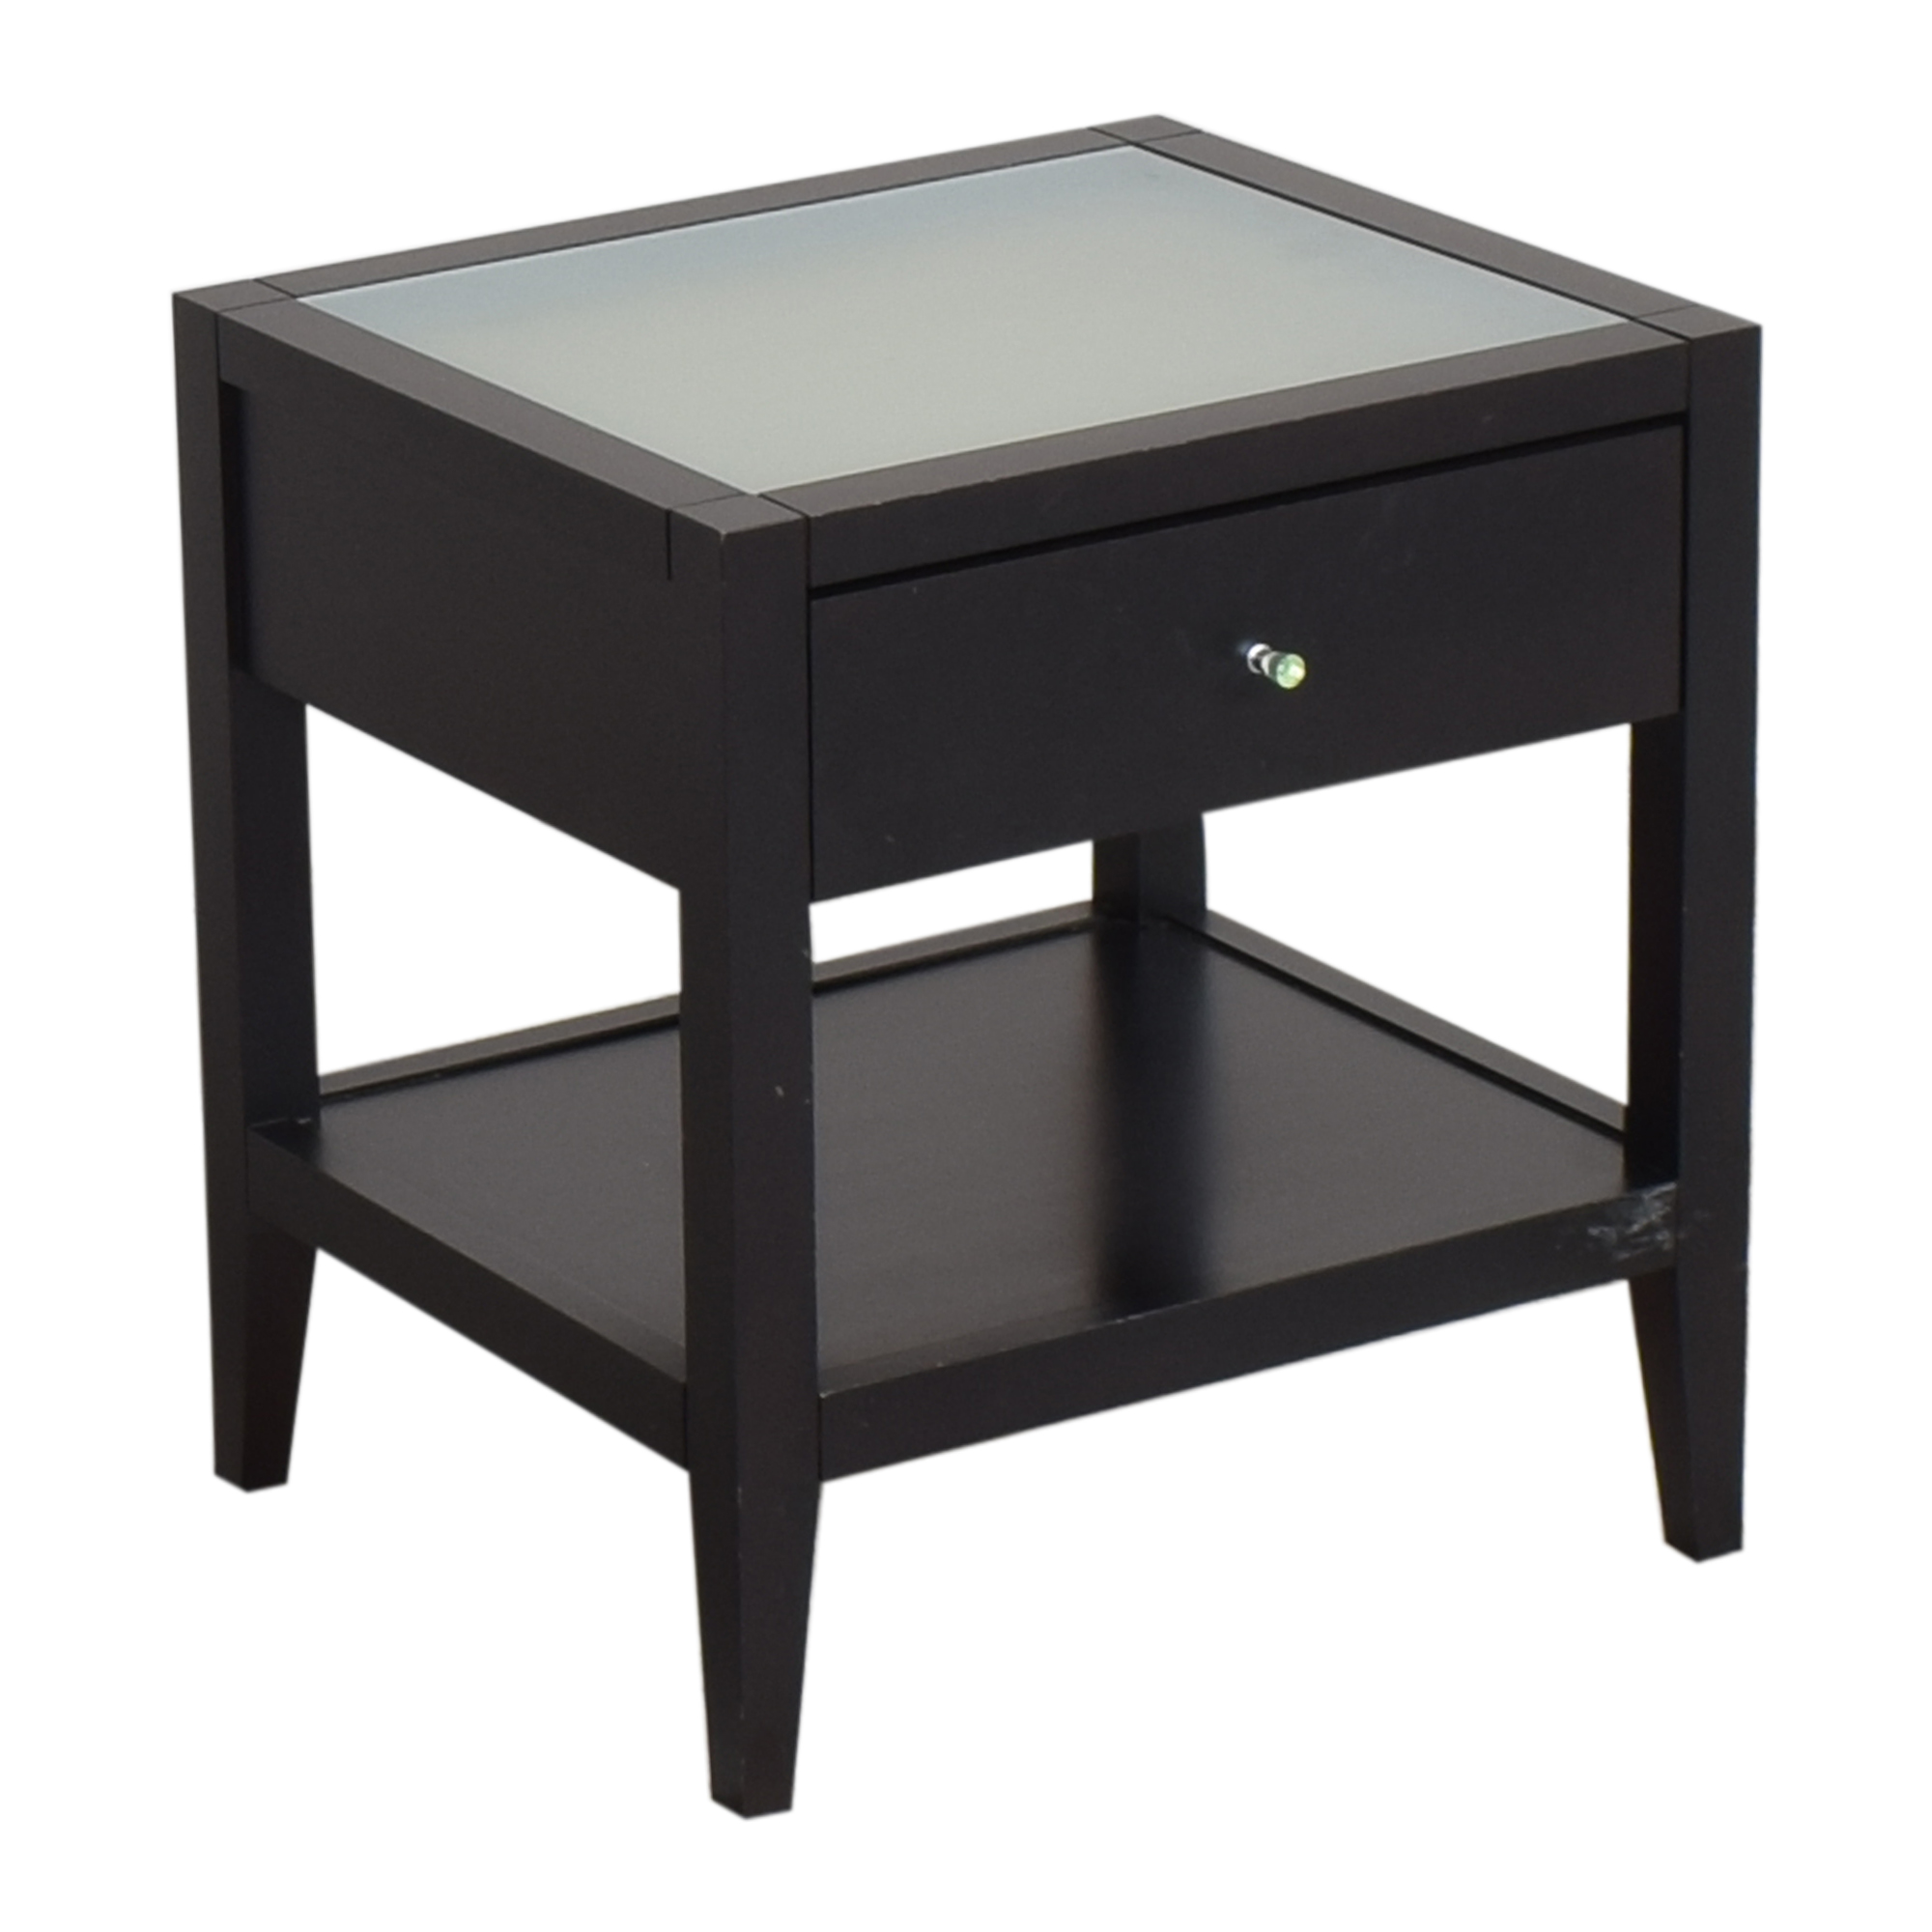 Crate & Barrel Crate & Barrel Nightstand by Baronet on sale